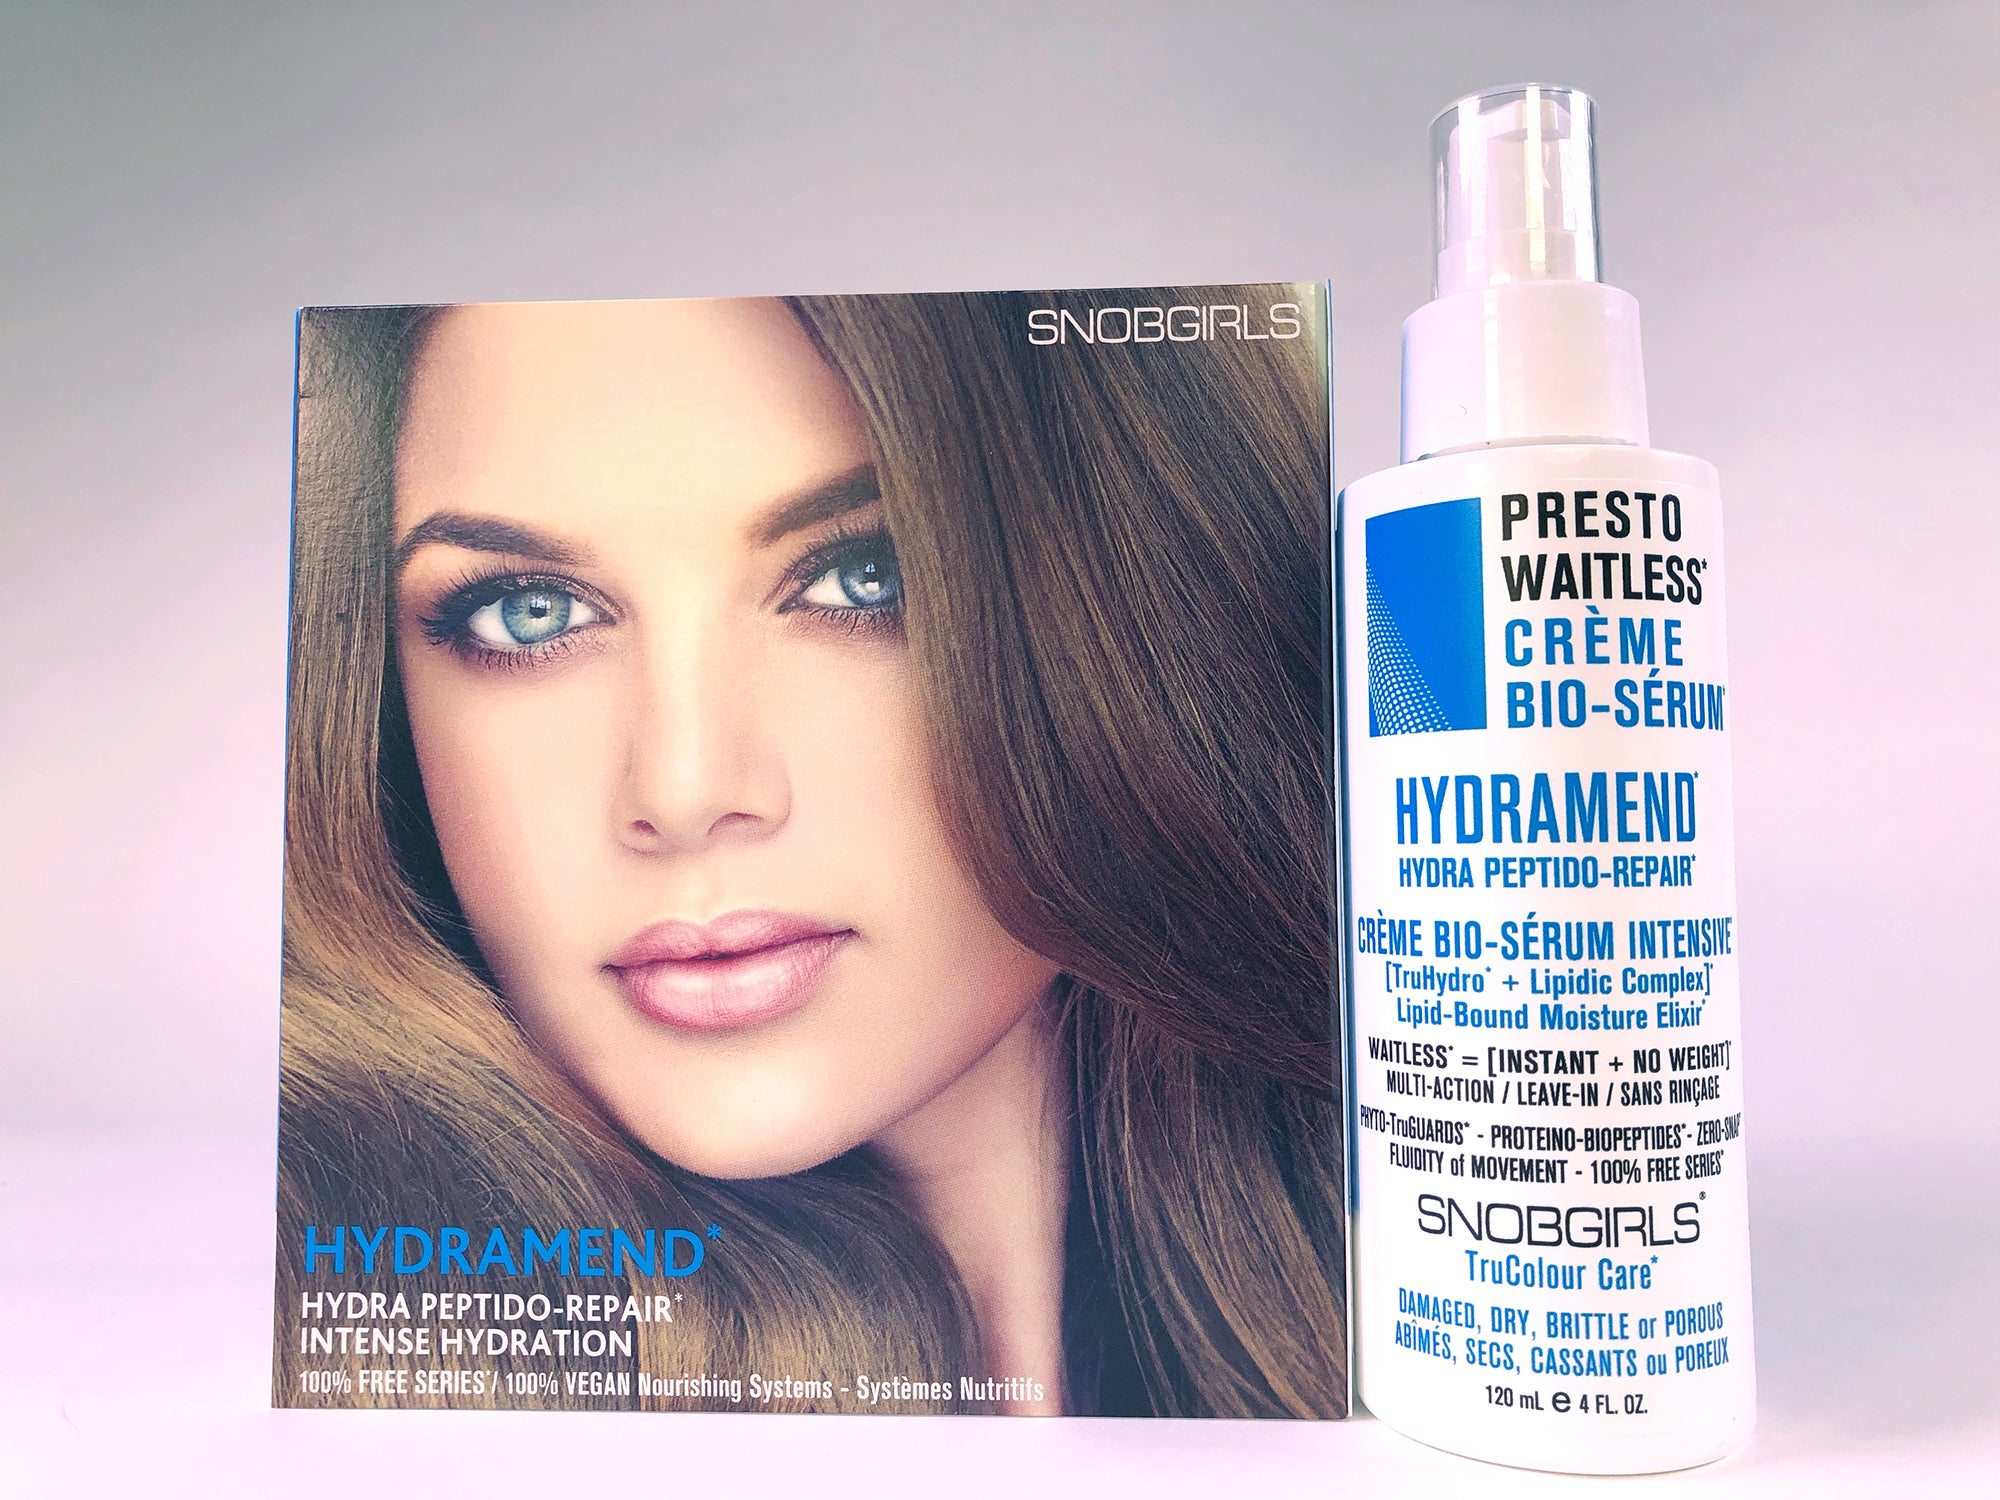 HYDRAMEND Intense Repair & Hydration Creme Bio-Serum - SNOBGIRLS.com